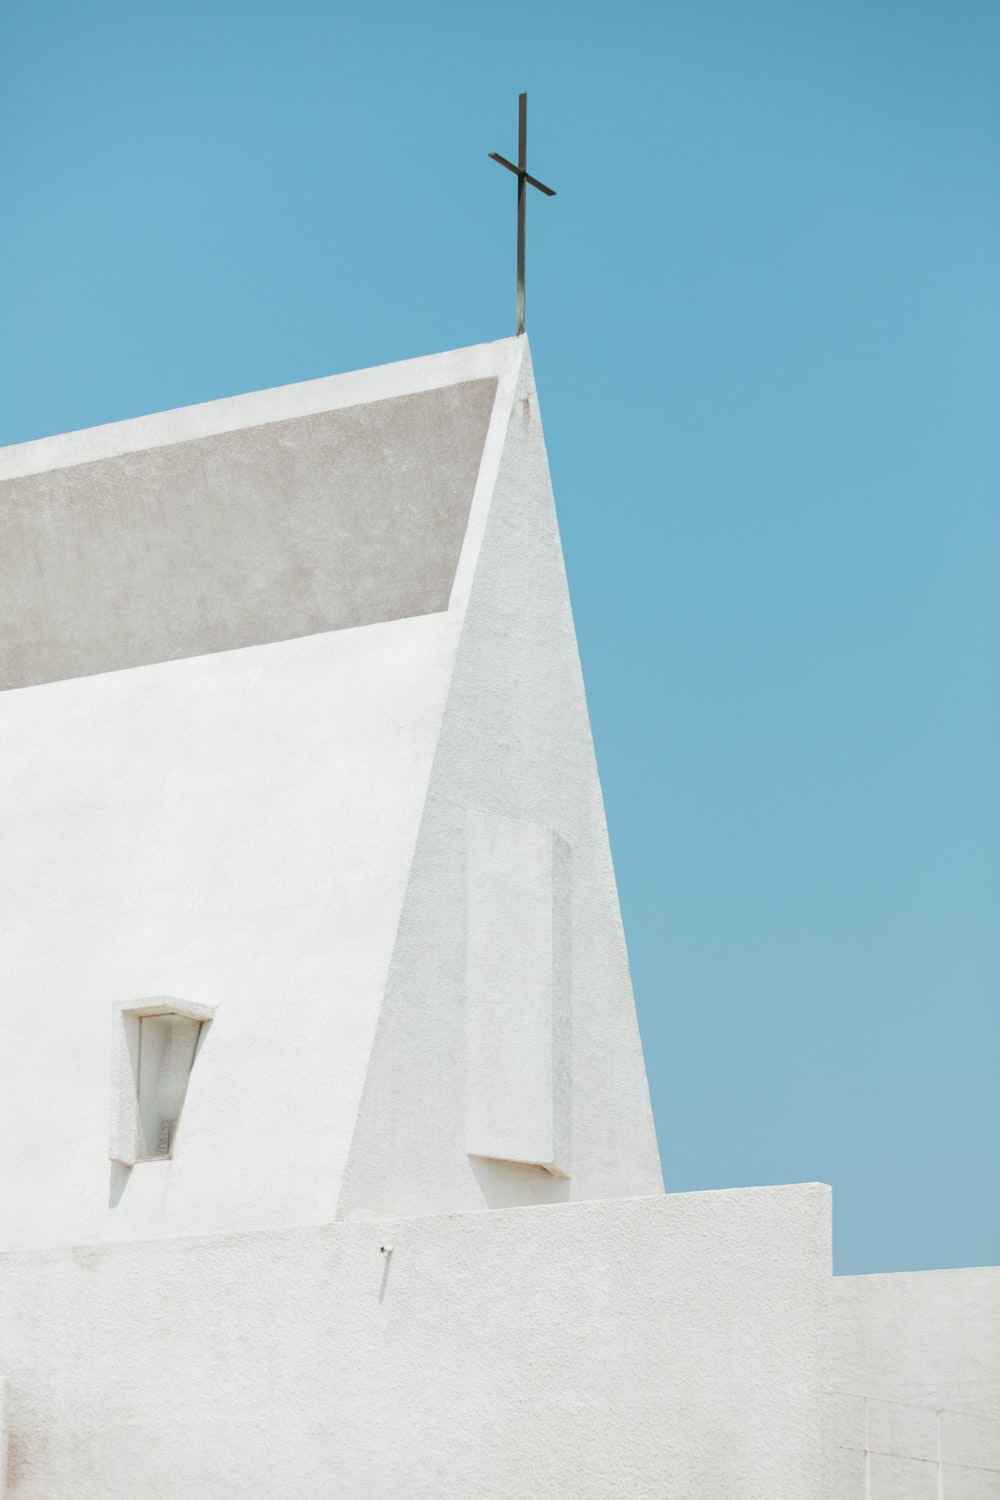 building with cross on top